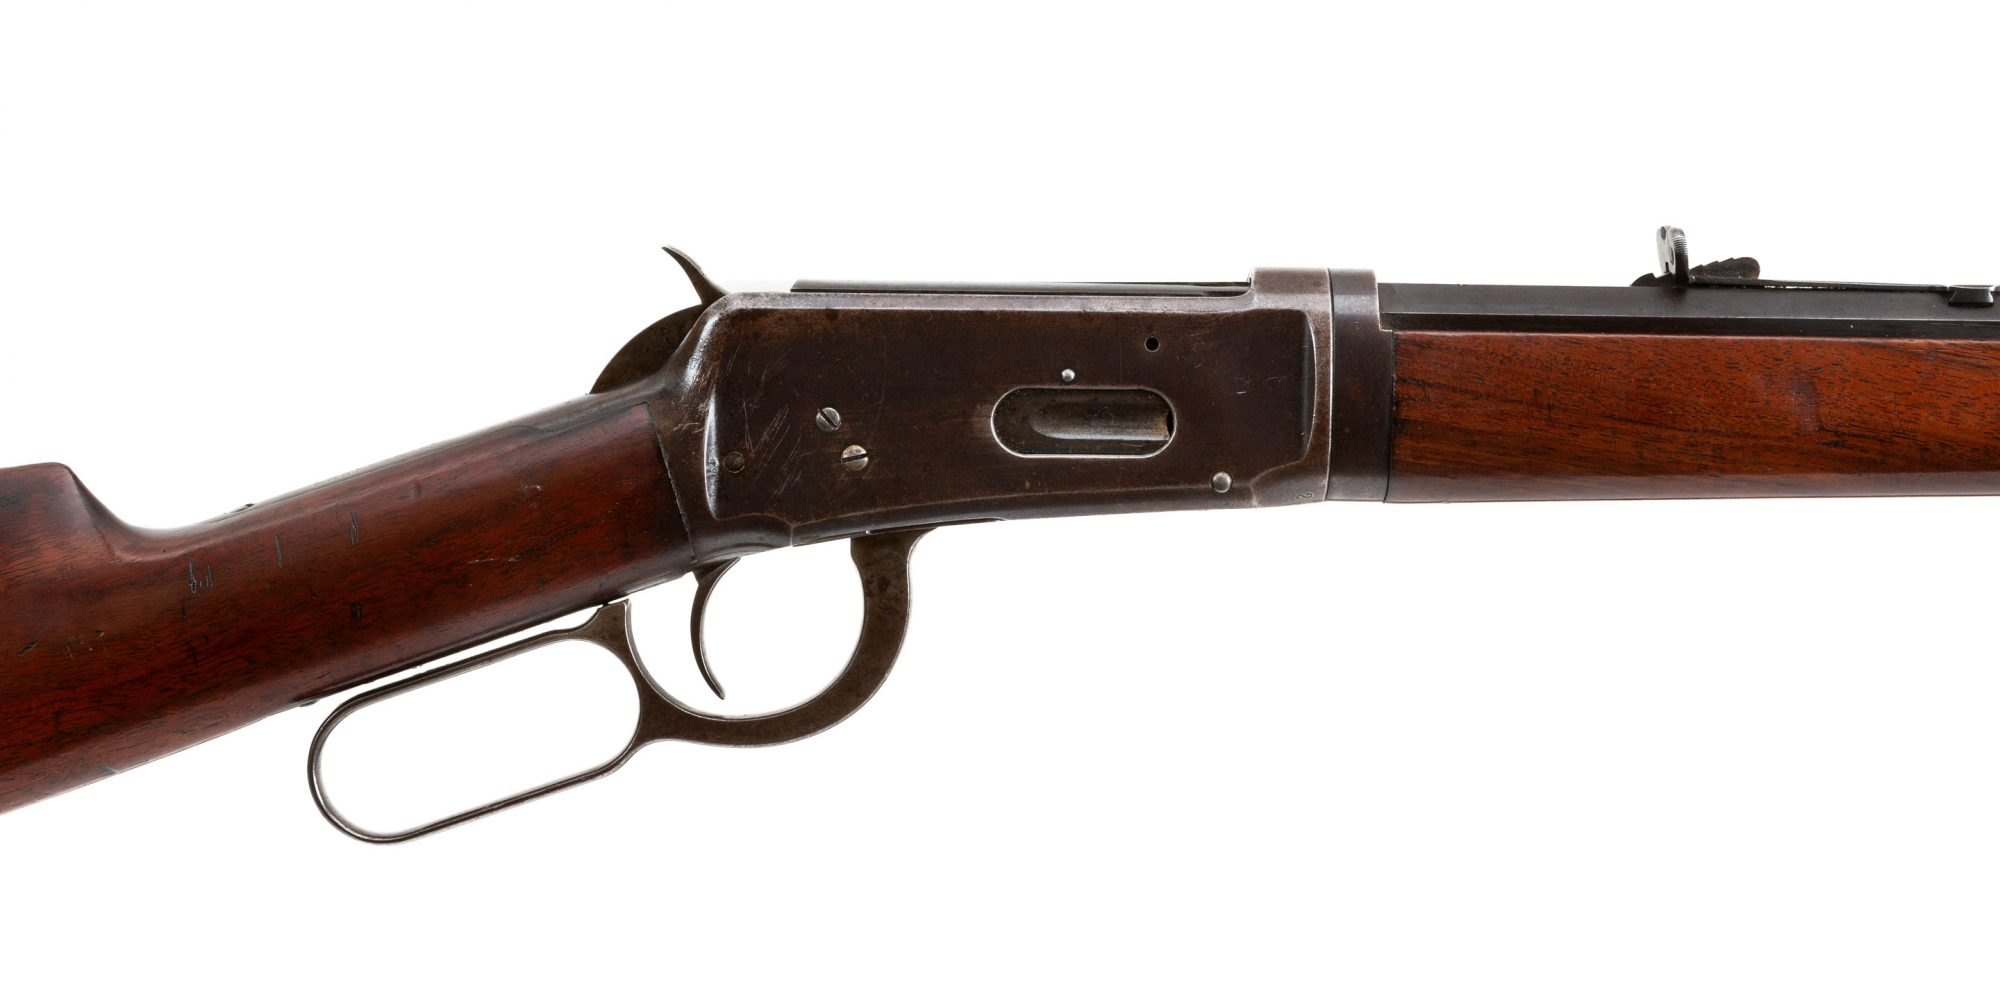 Photo of an antique Winchester 1894 from 1895, for sale by Turnbull Restoration of Bloomfield, NY